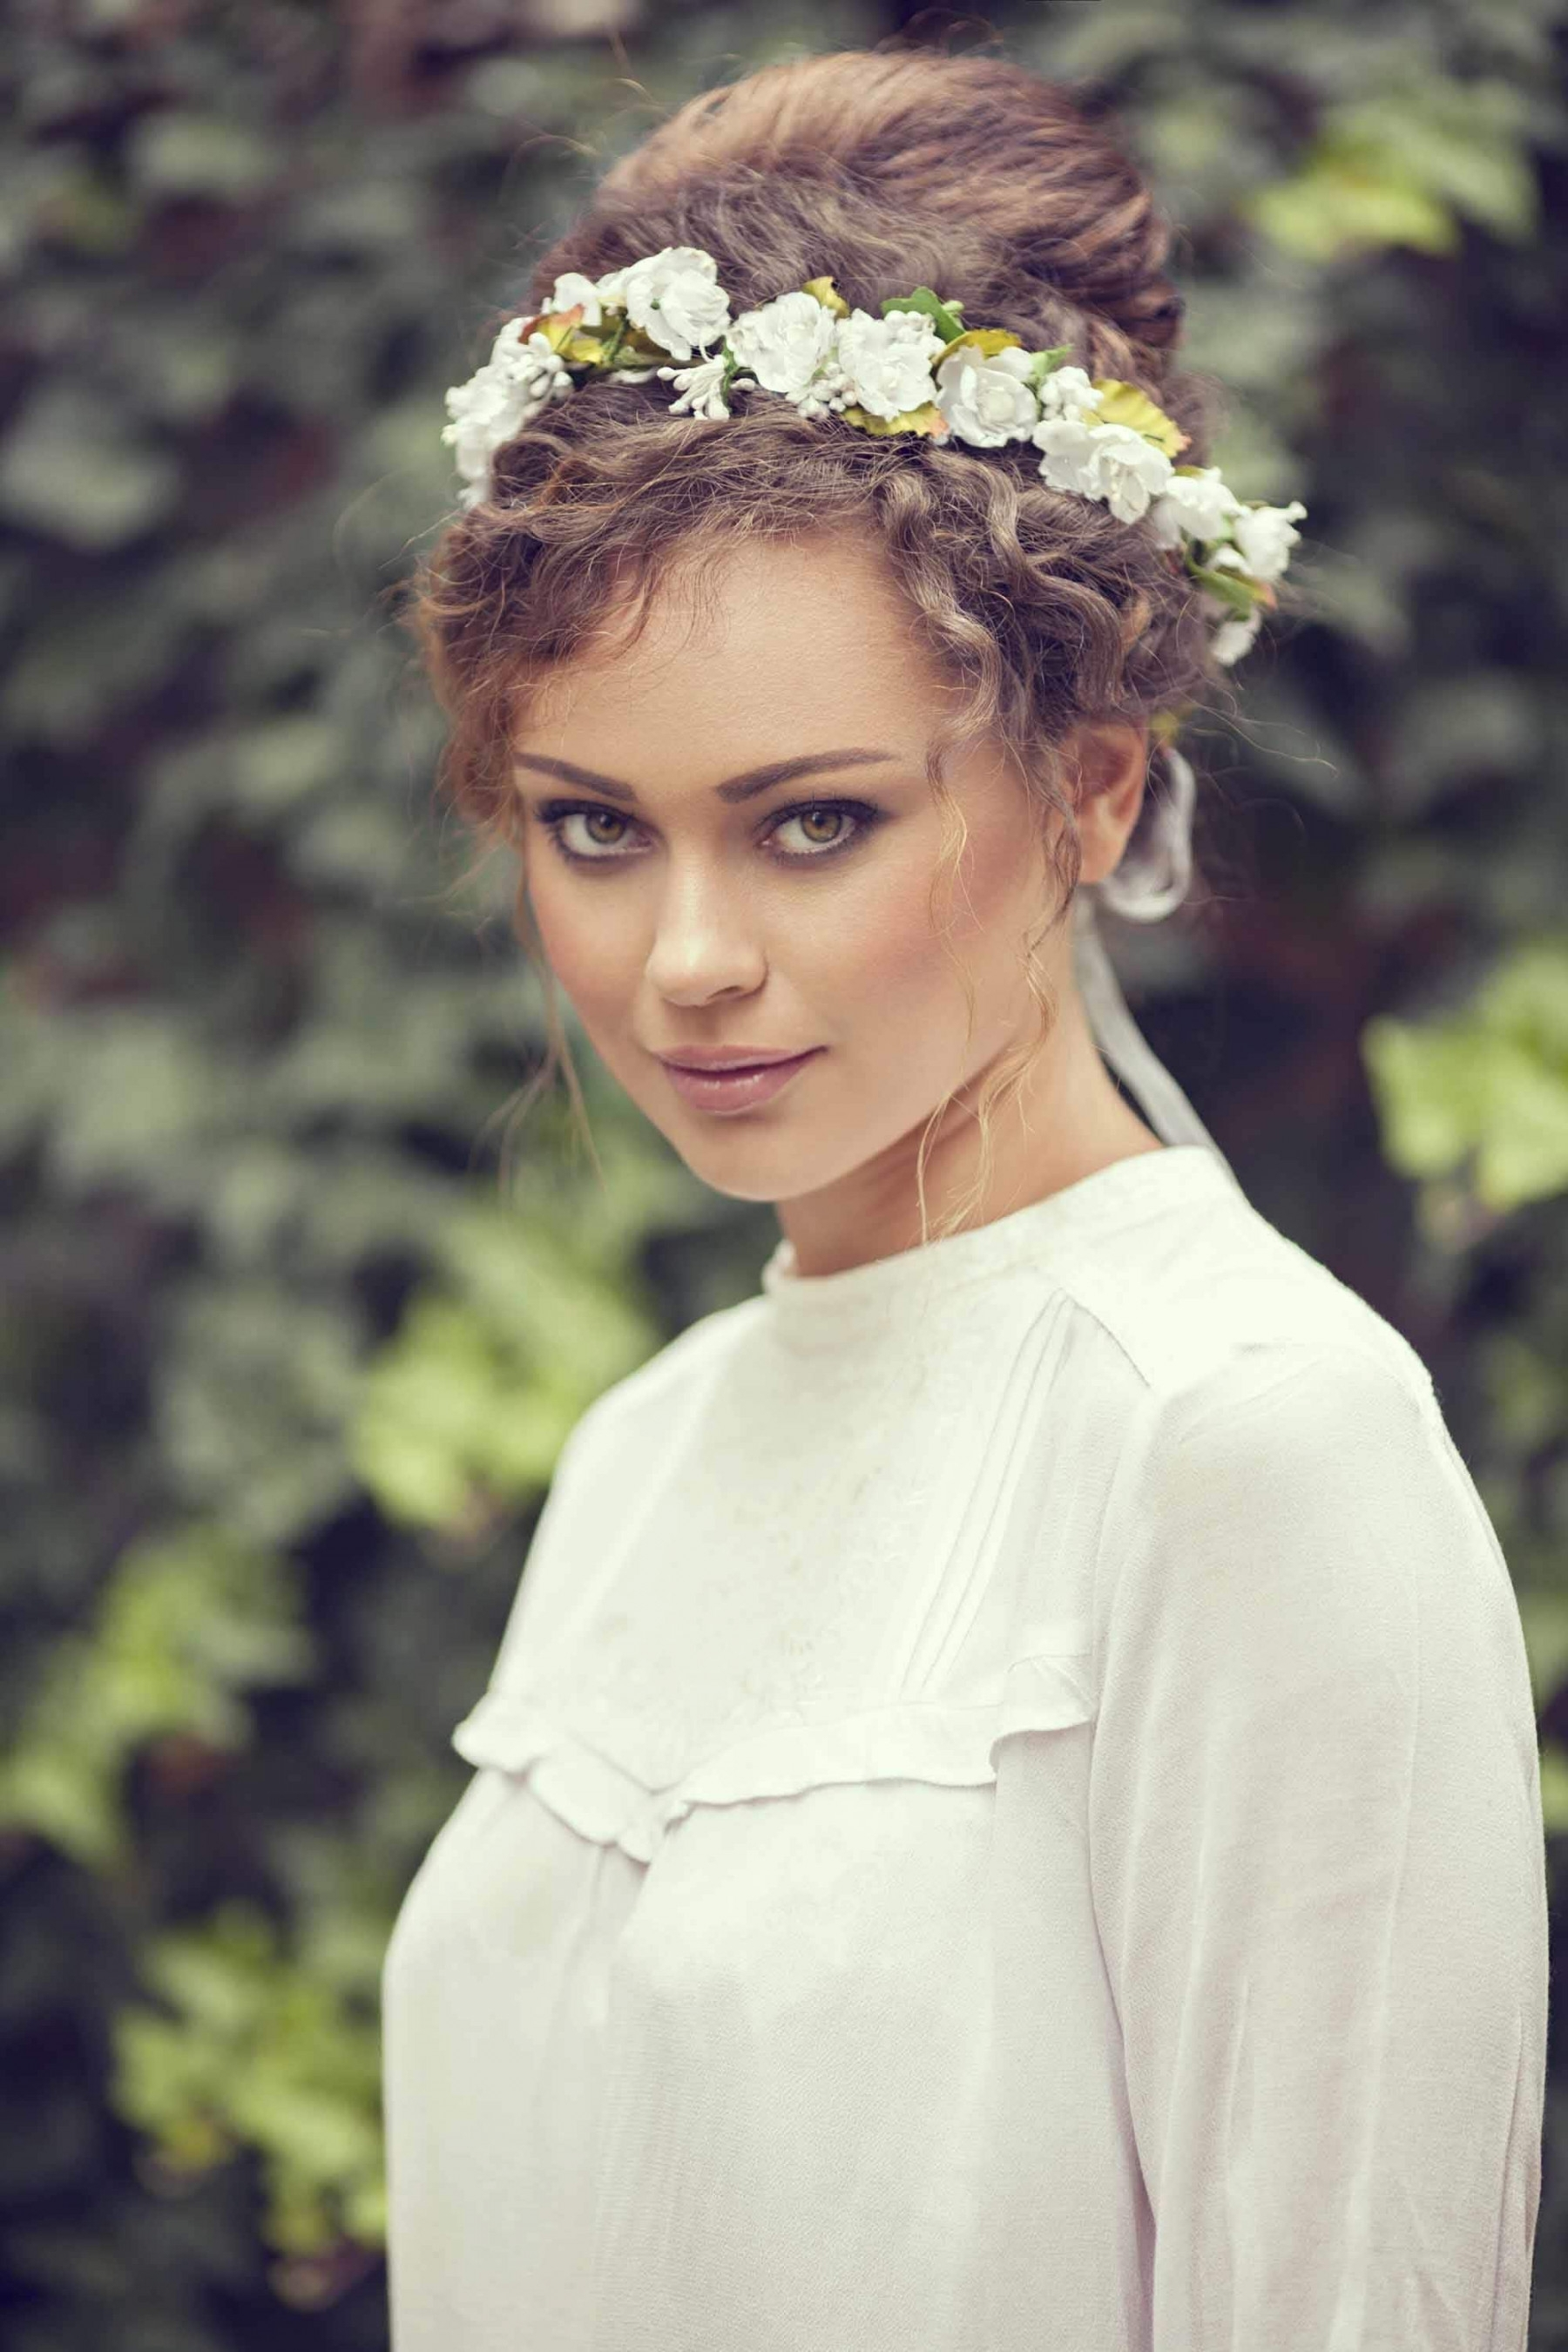 Wedding Updos For Curly Hair: 9 Gorgeous Looks To Try | Latest For Wedding Updos For Thick Hair (View 14 of 15)